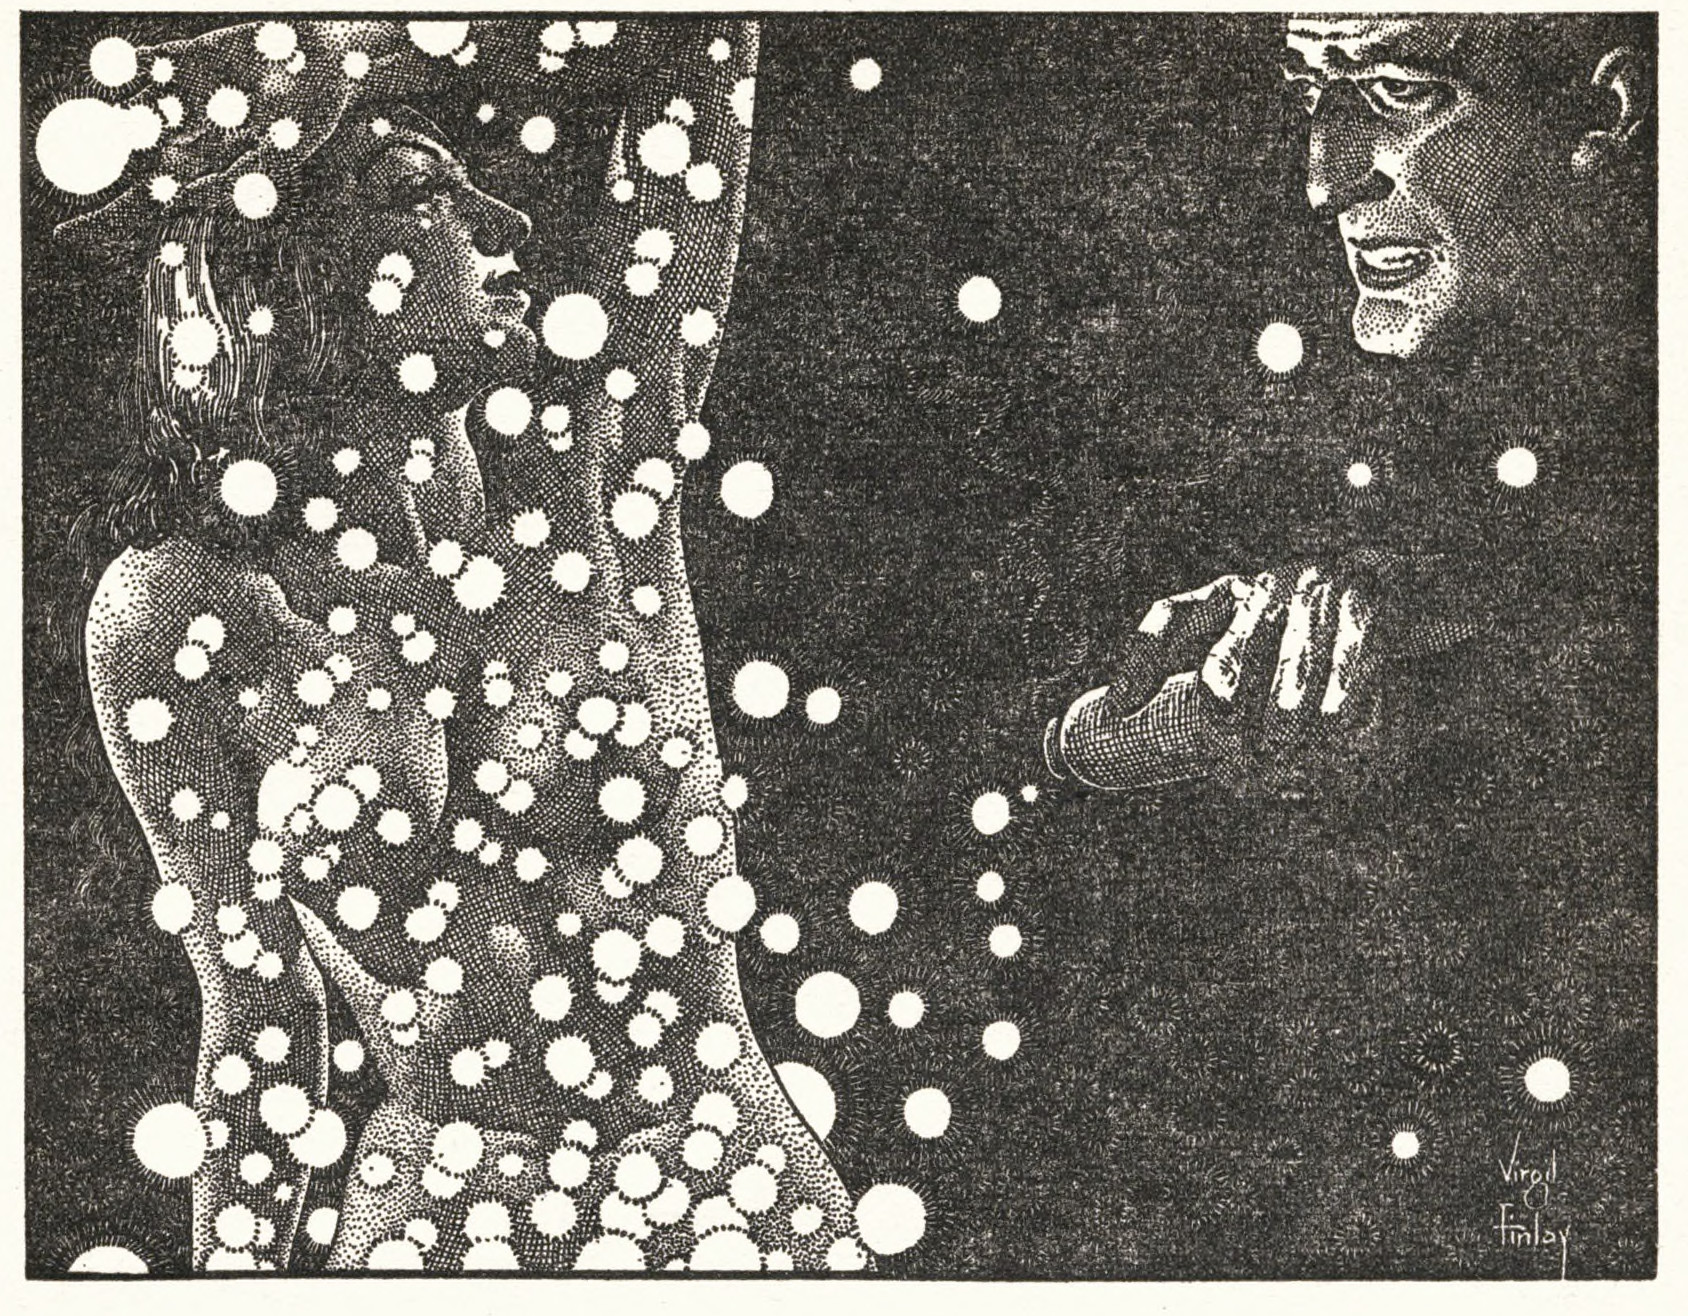 "A nude woman obscured with bubbles in an interior illustration by Virgil finlay for Arthur J. Burks's story ""Yesterday's Doors."""